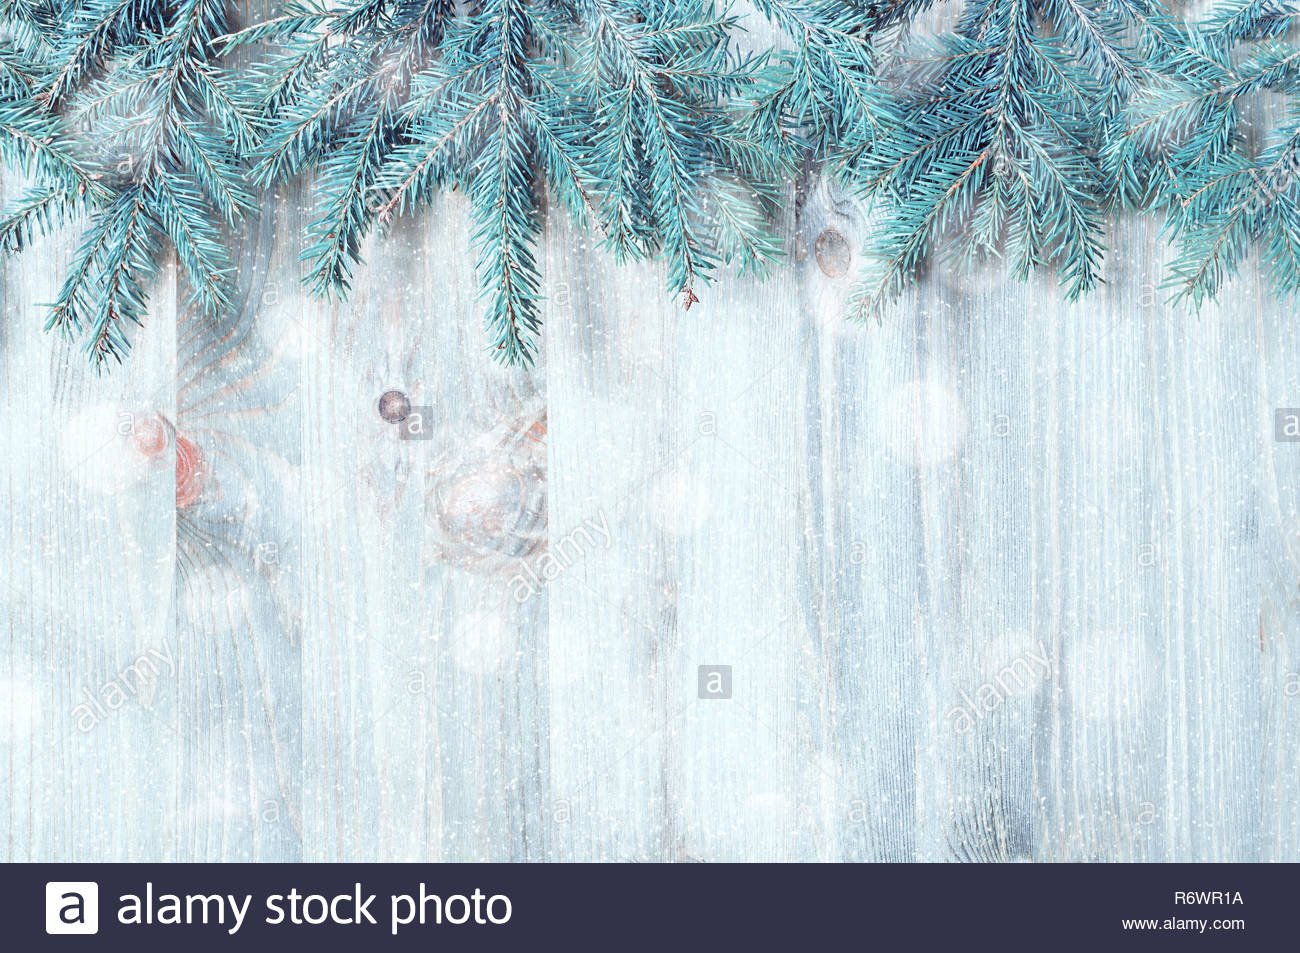 Winter Christmas and New year background Blue fir tree branches 1300x953